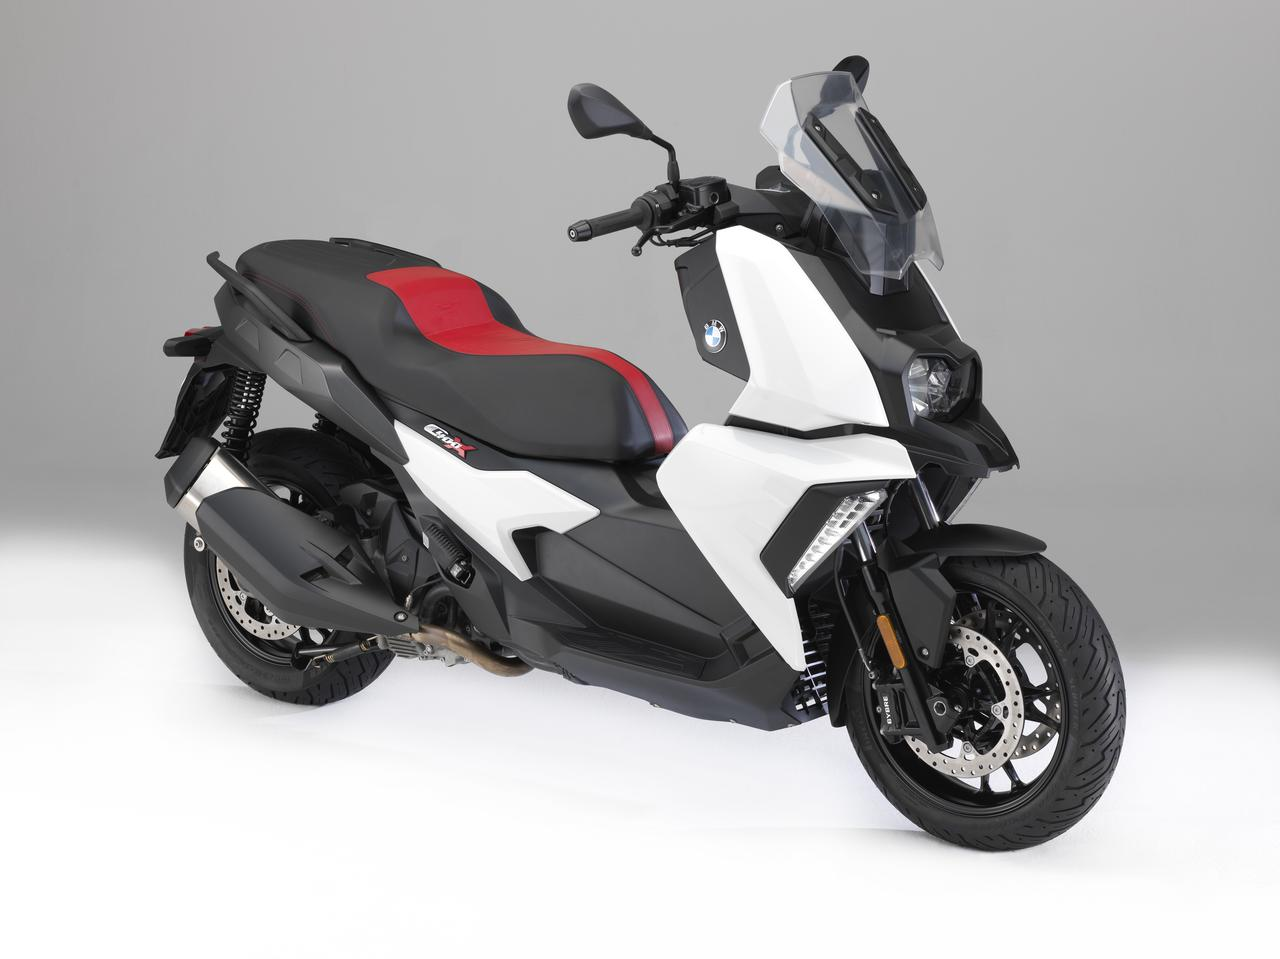 Images : 4番目の画像 - BMW C 400 X - LAWRENCE - Motorcycle x Cars + α = Your Life.